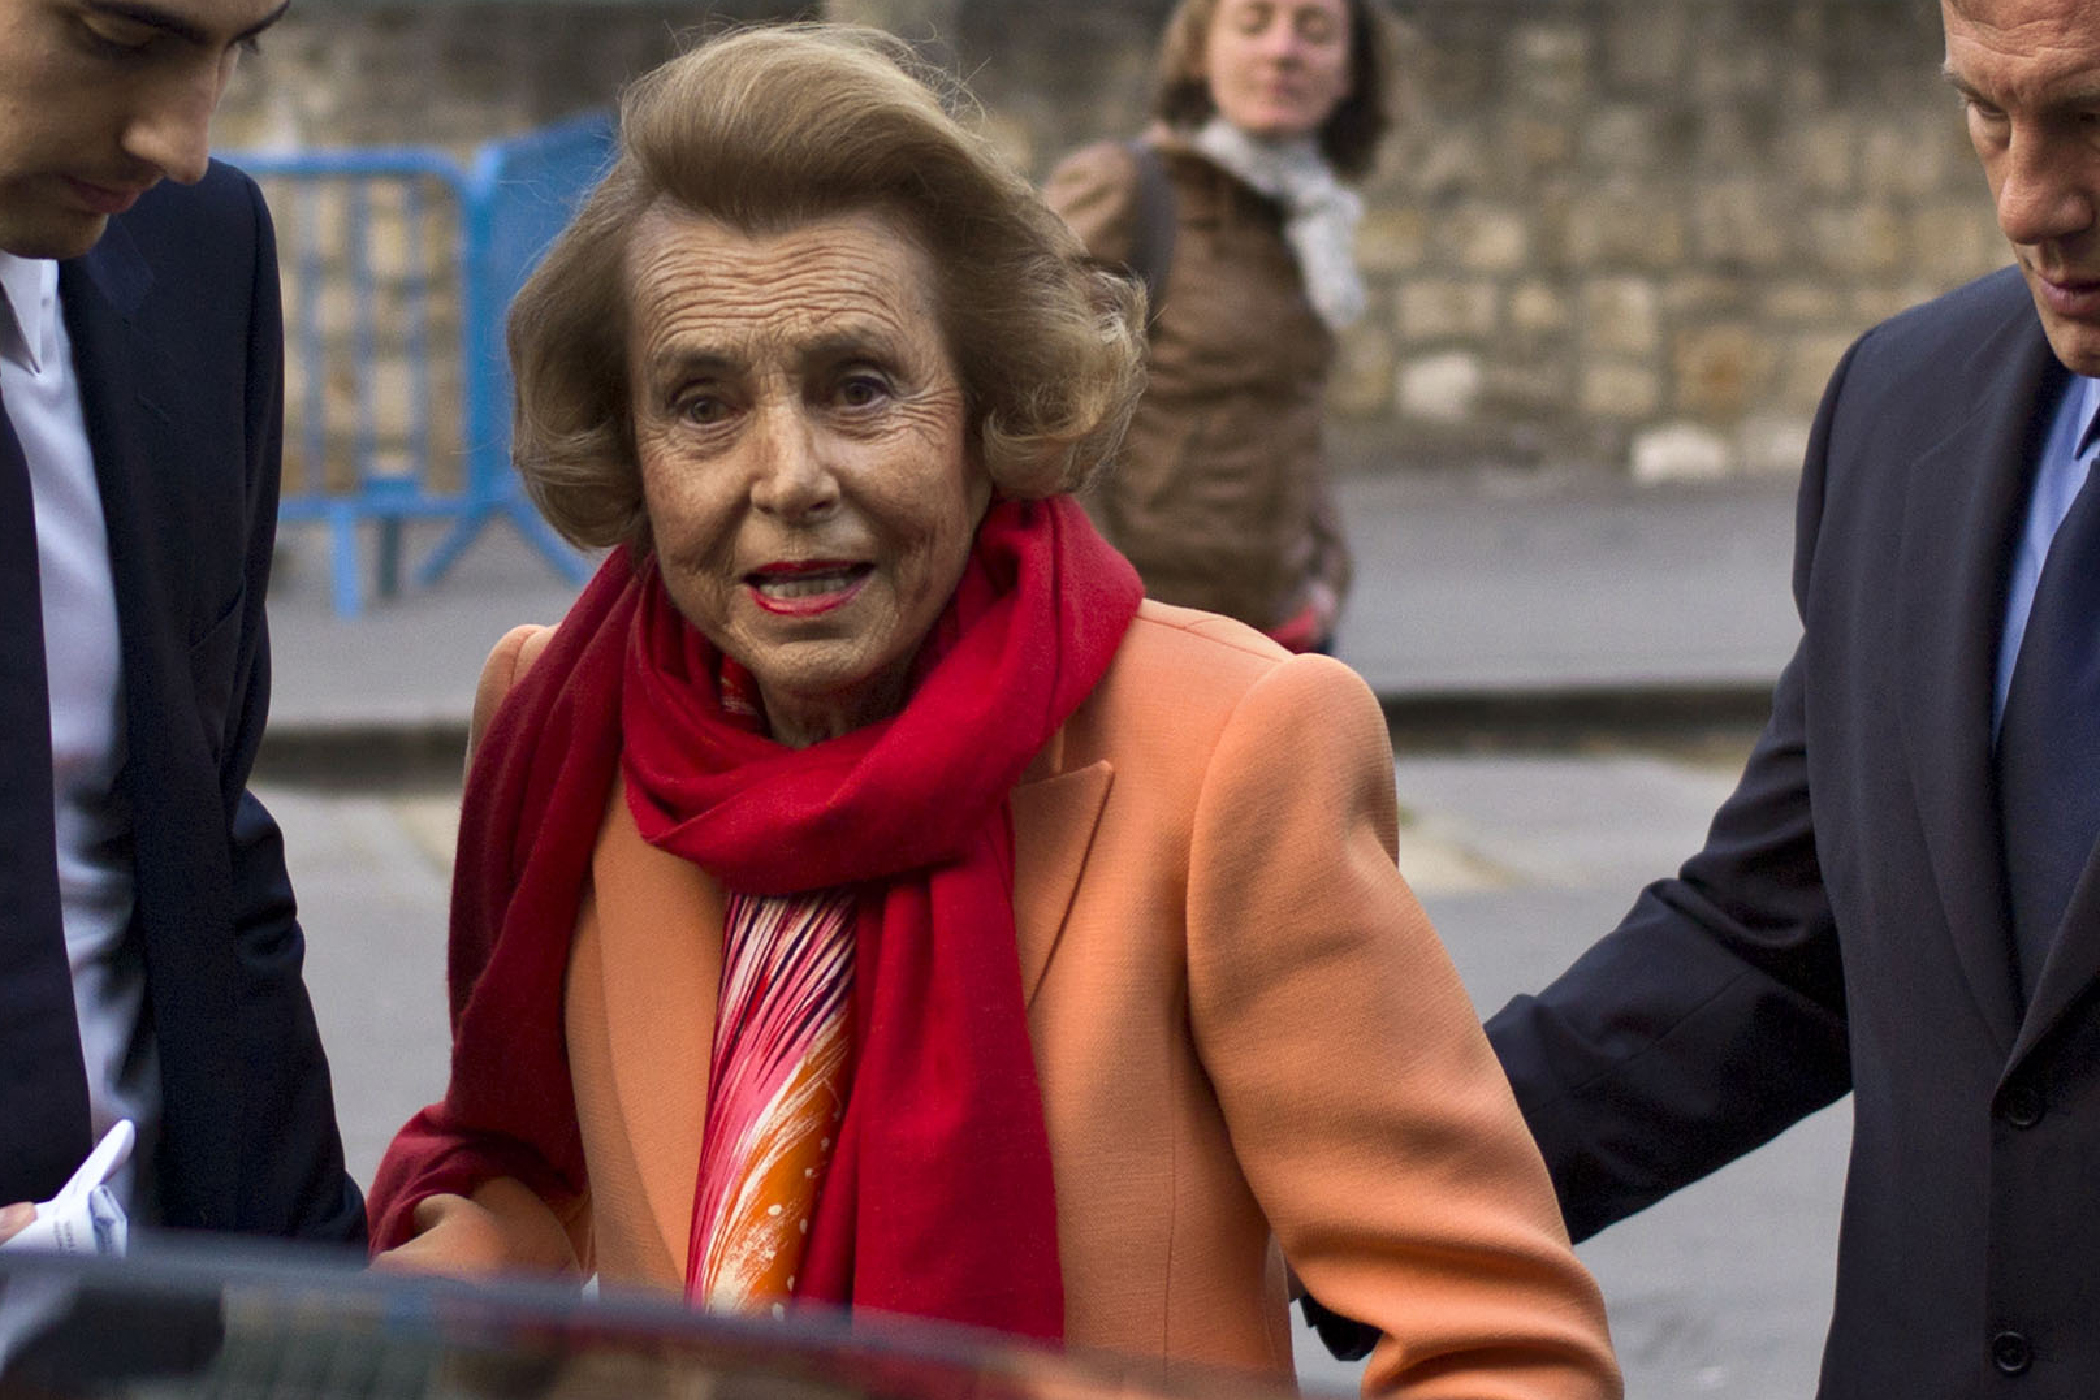 L'Oreal heiress Liliane Bettencourt, center, and her grandson Jean-Victor Meyers, second from left, leave the L'Oreal-UNESCO prize for the women in science, in Paris, March 29, 2012.